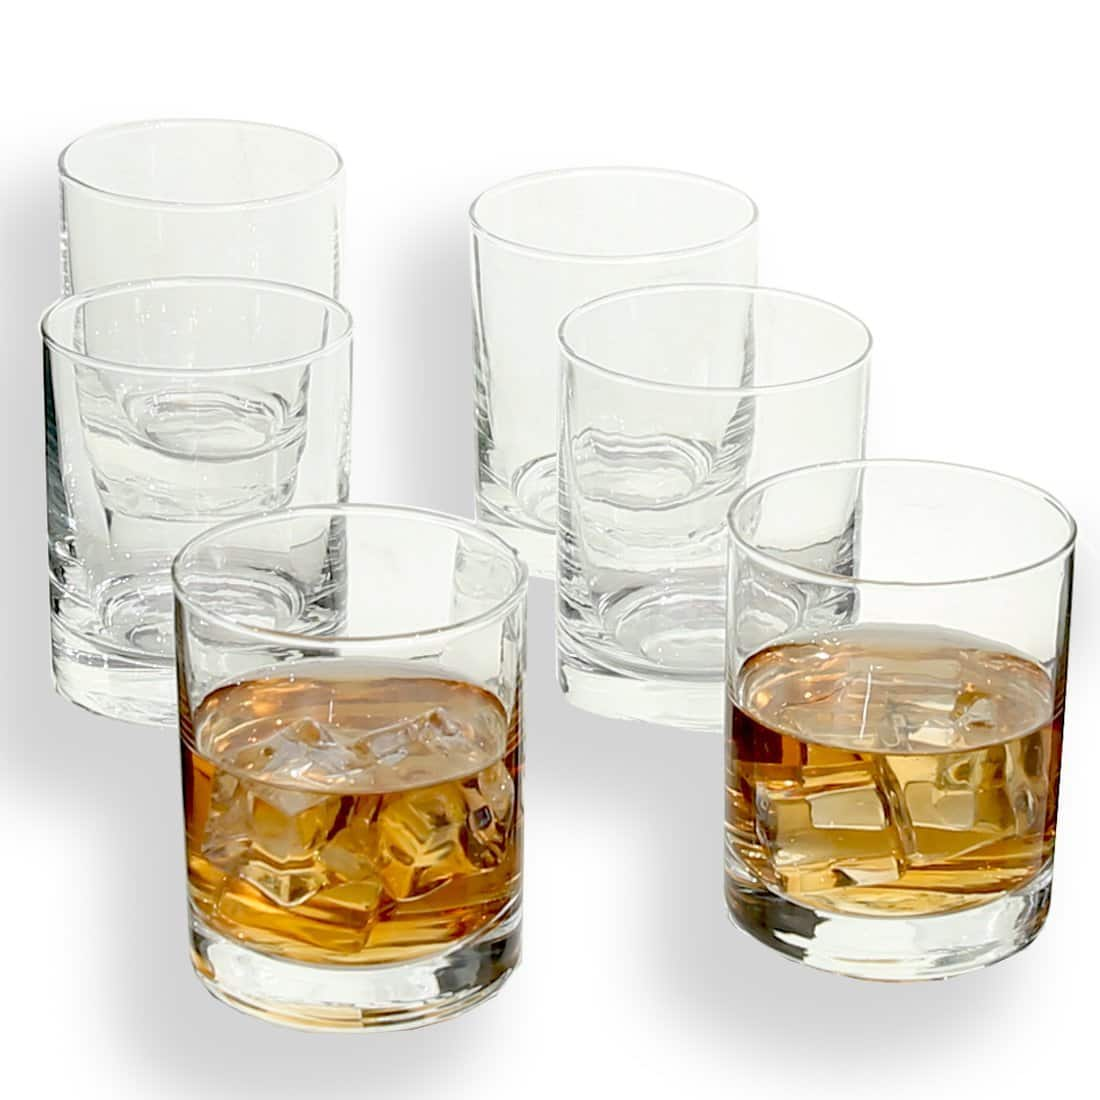 $9.80 for Rock Style Old Fashioned Whiskey Glasses 11 OZ,100% Short Glasses For Camping/Party, (6-pack)